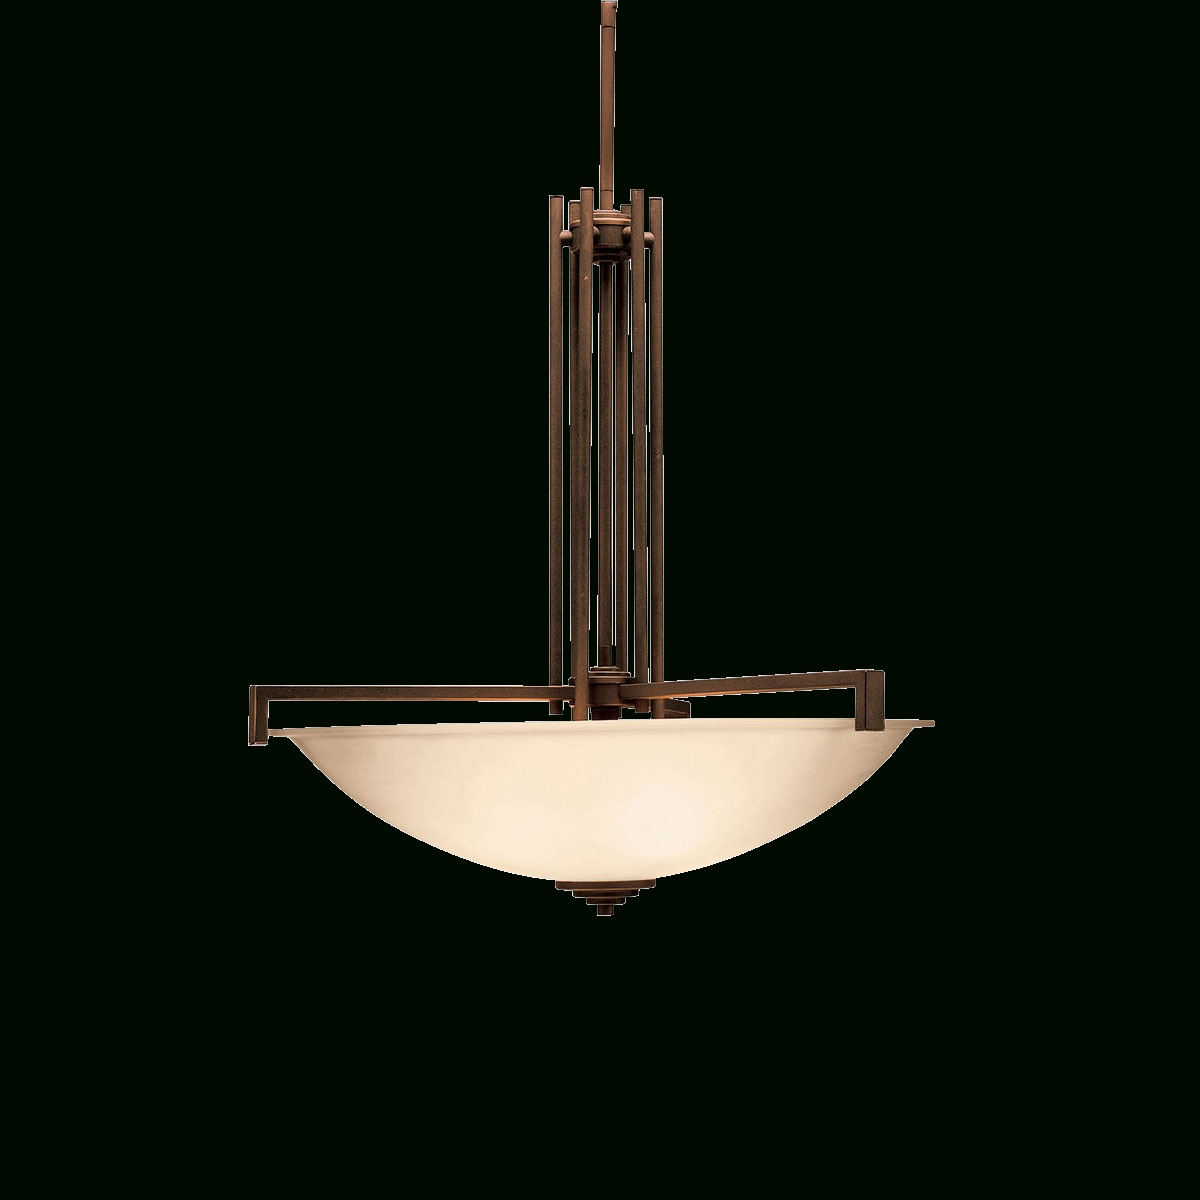 Contemporary 4 Light Inverted Pendant (3299ni) Brushed Nickel Pertaining To Most Recently Released Inverted Pendant Chandeliers (View 20 of 20)